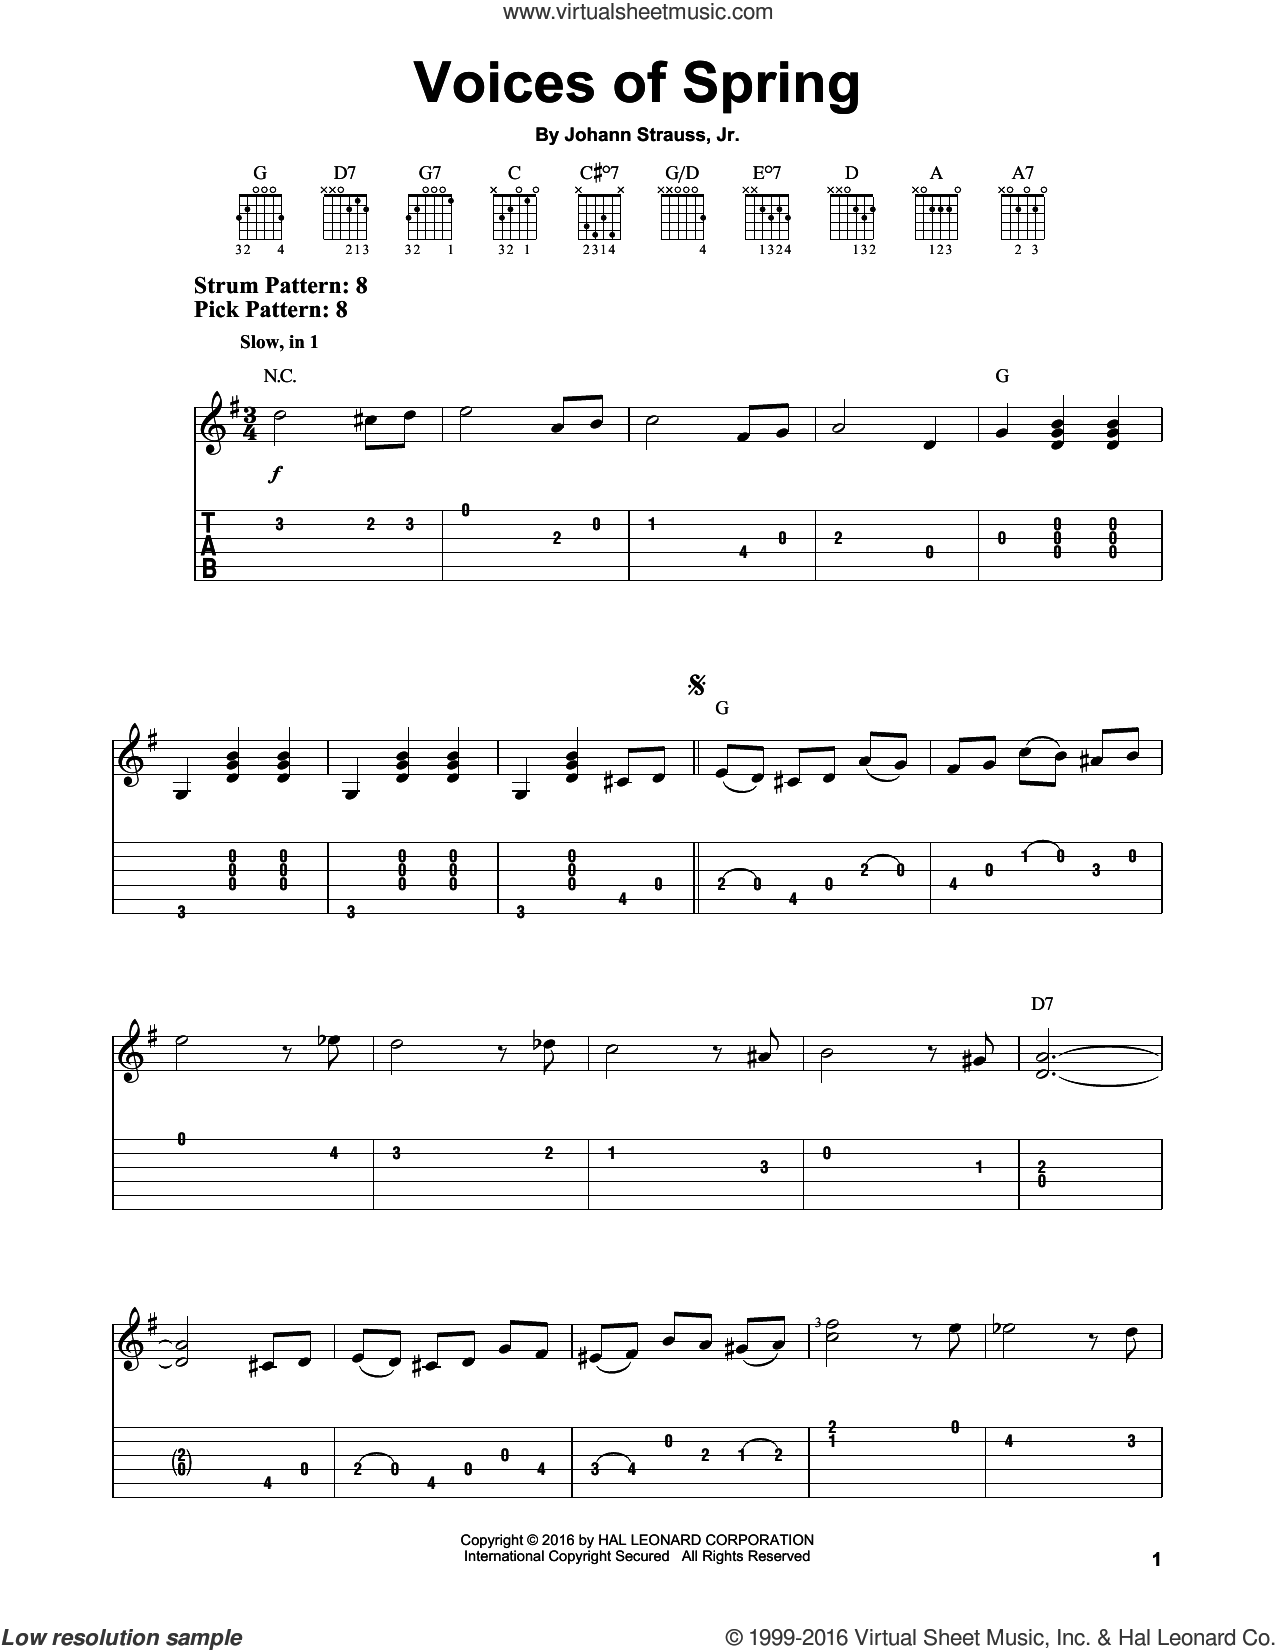 Voices Of Spring sheet music for guitar solo (easy tablature) by Johann Strauss, Jr., classical score, easy guitar (easy tablature). Score Image Preview.